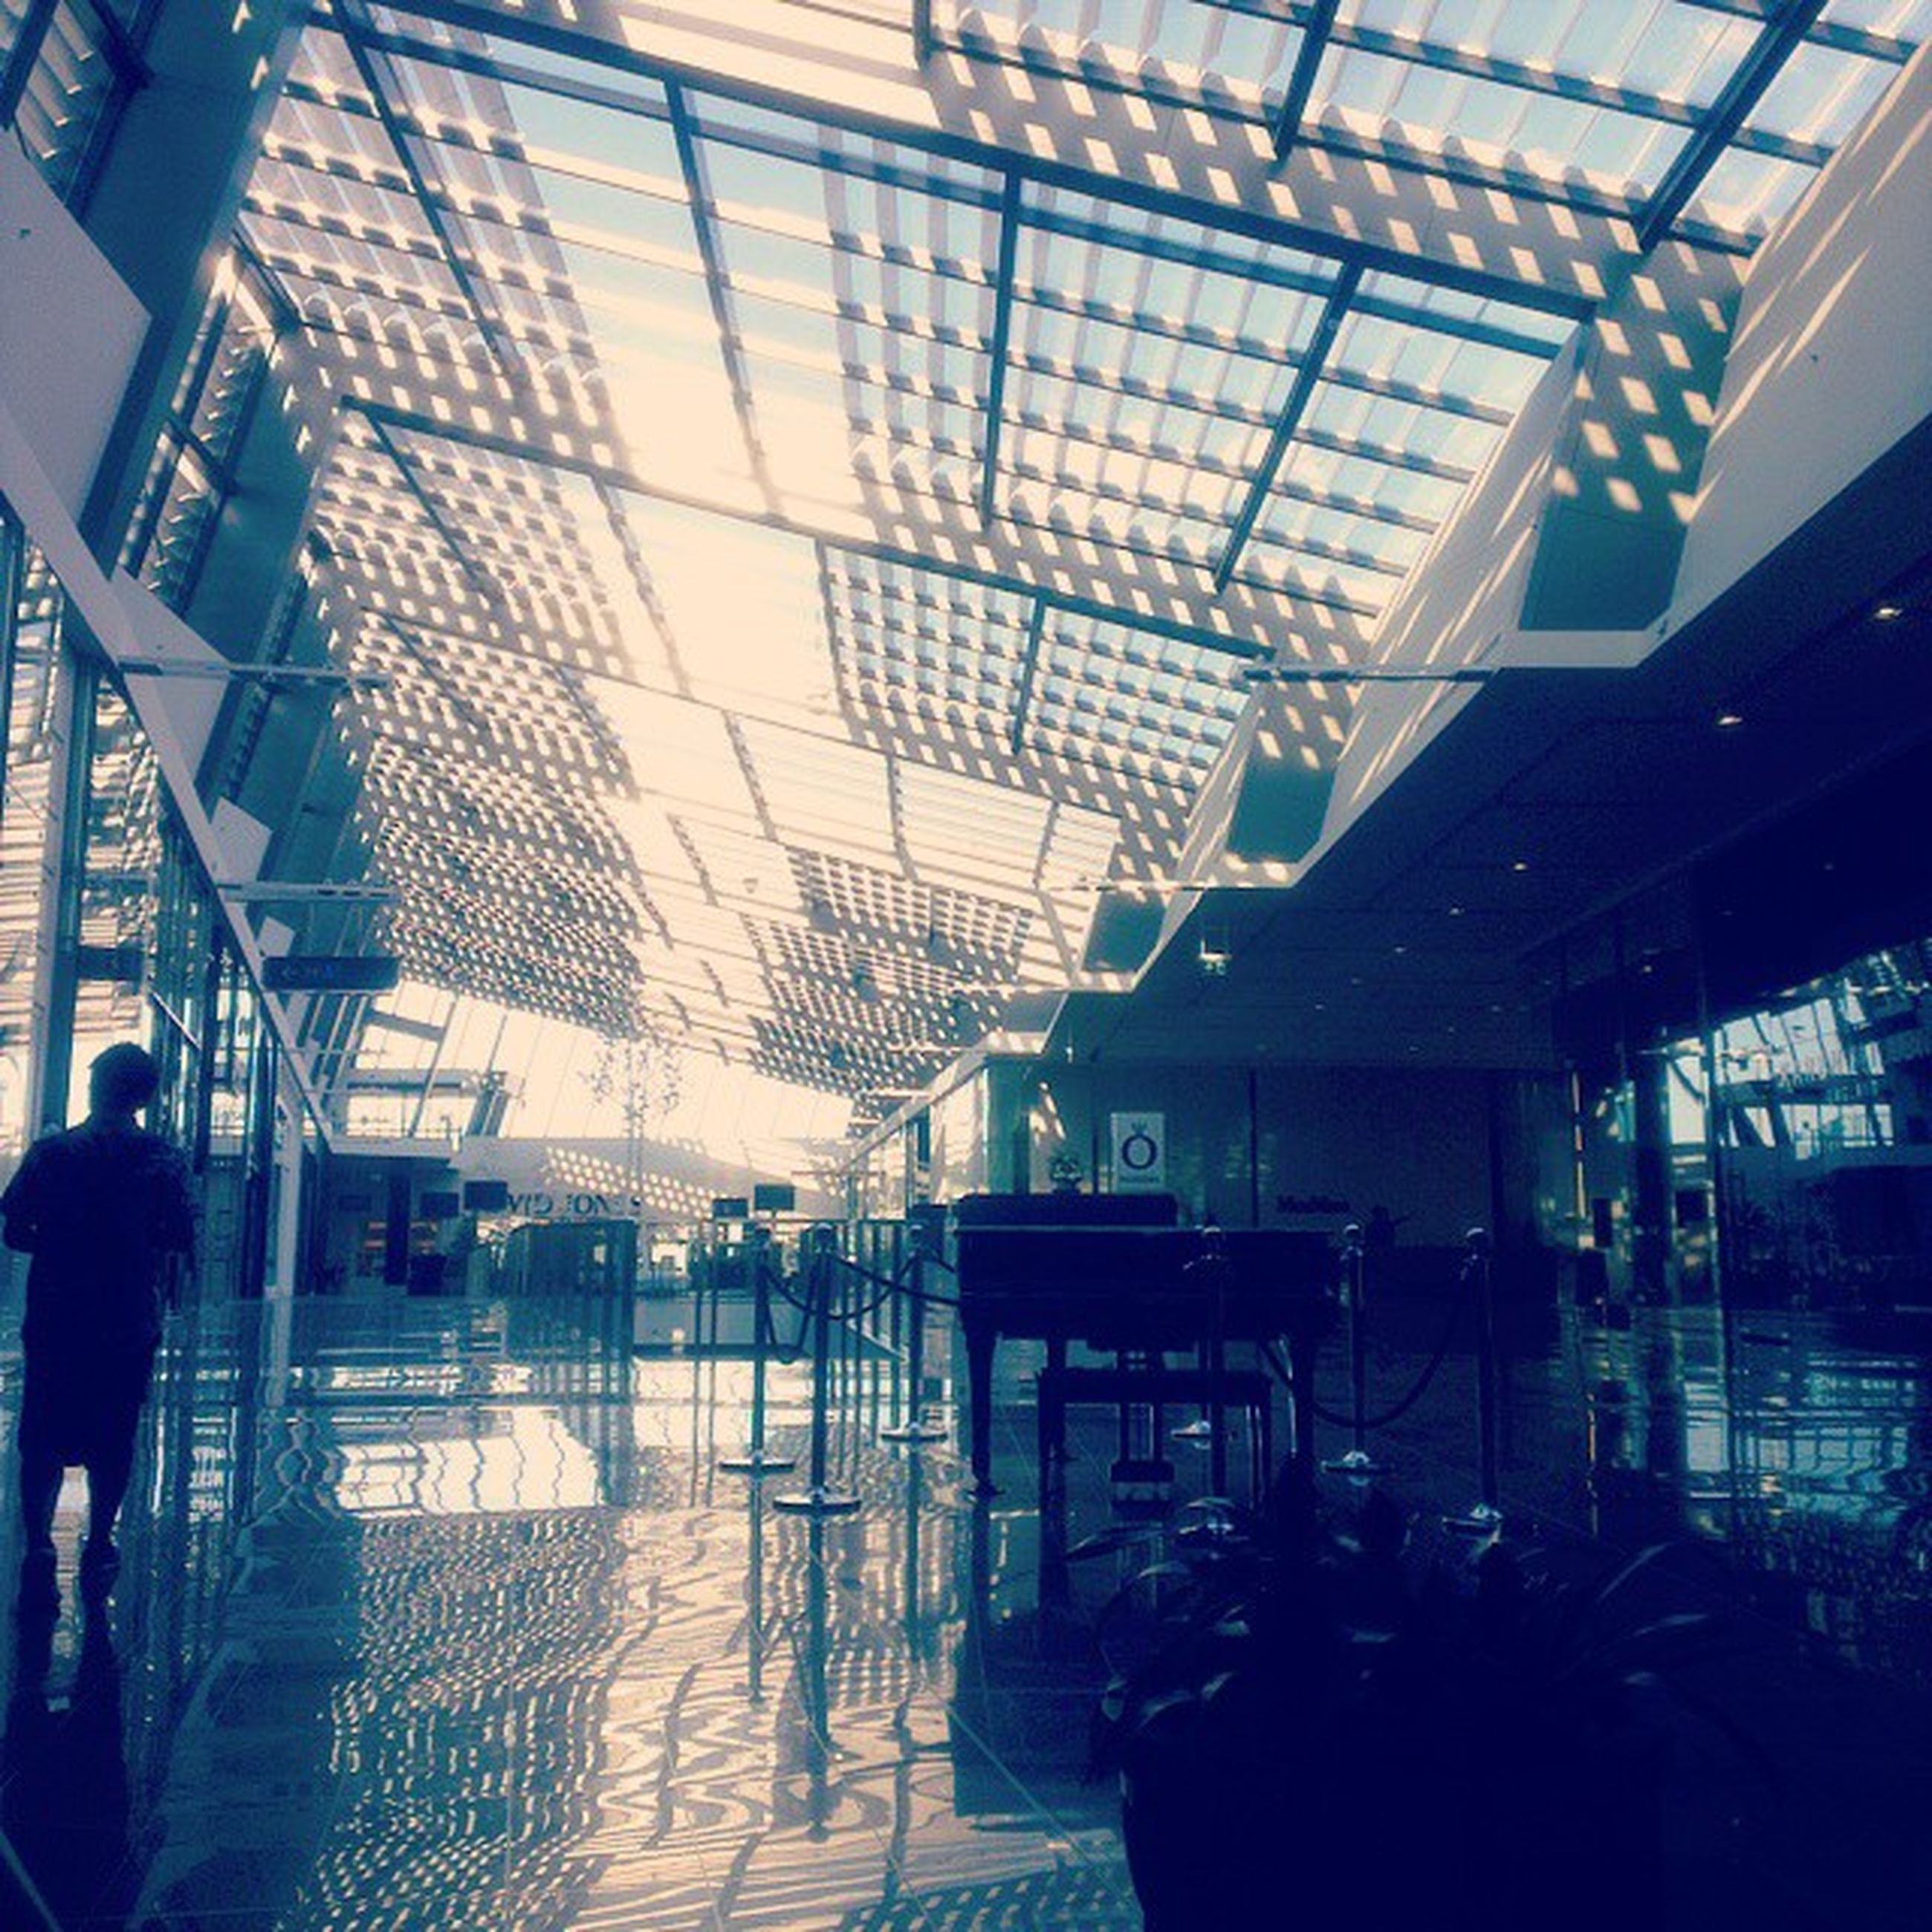 indoors, ceiling, architecture, glass - material, built structure, modern, window, men, transparent, chair, lifestyles, person, incidental people, interior, sunlight, reflection, silhouette, leisure activity, day